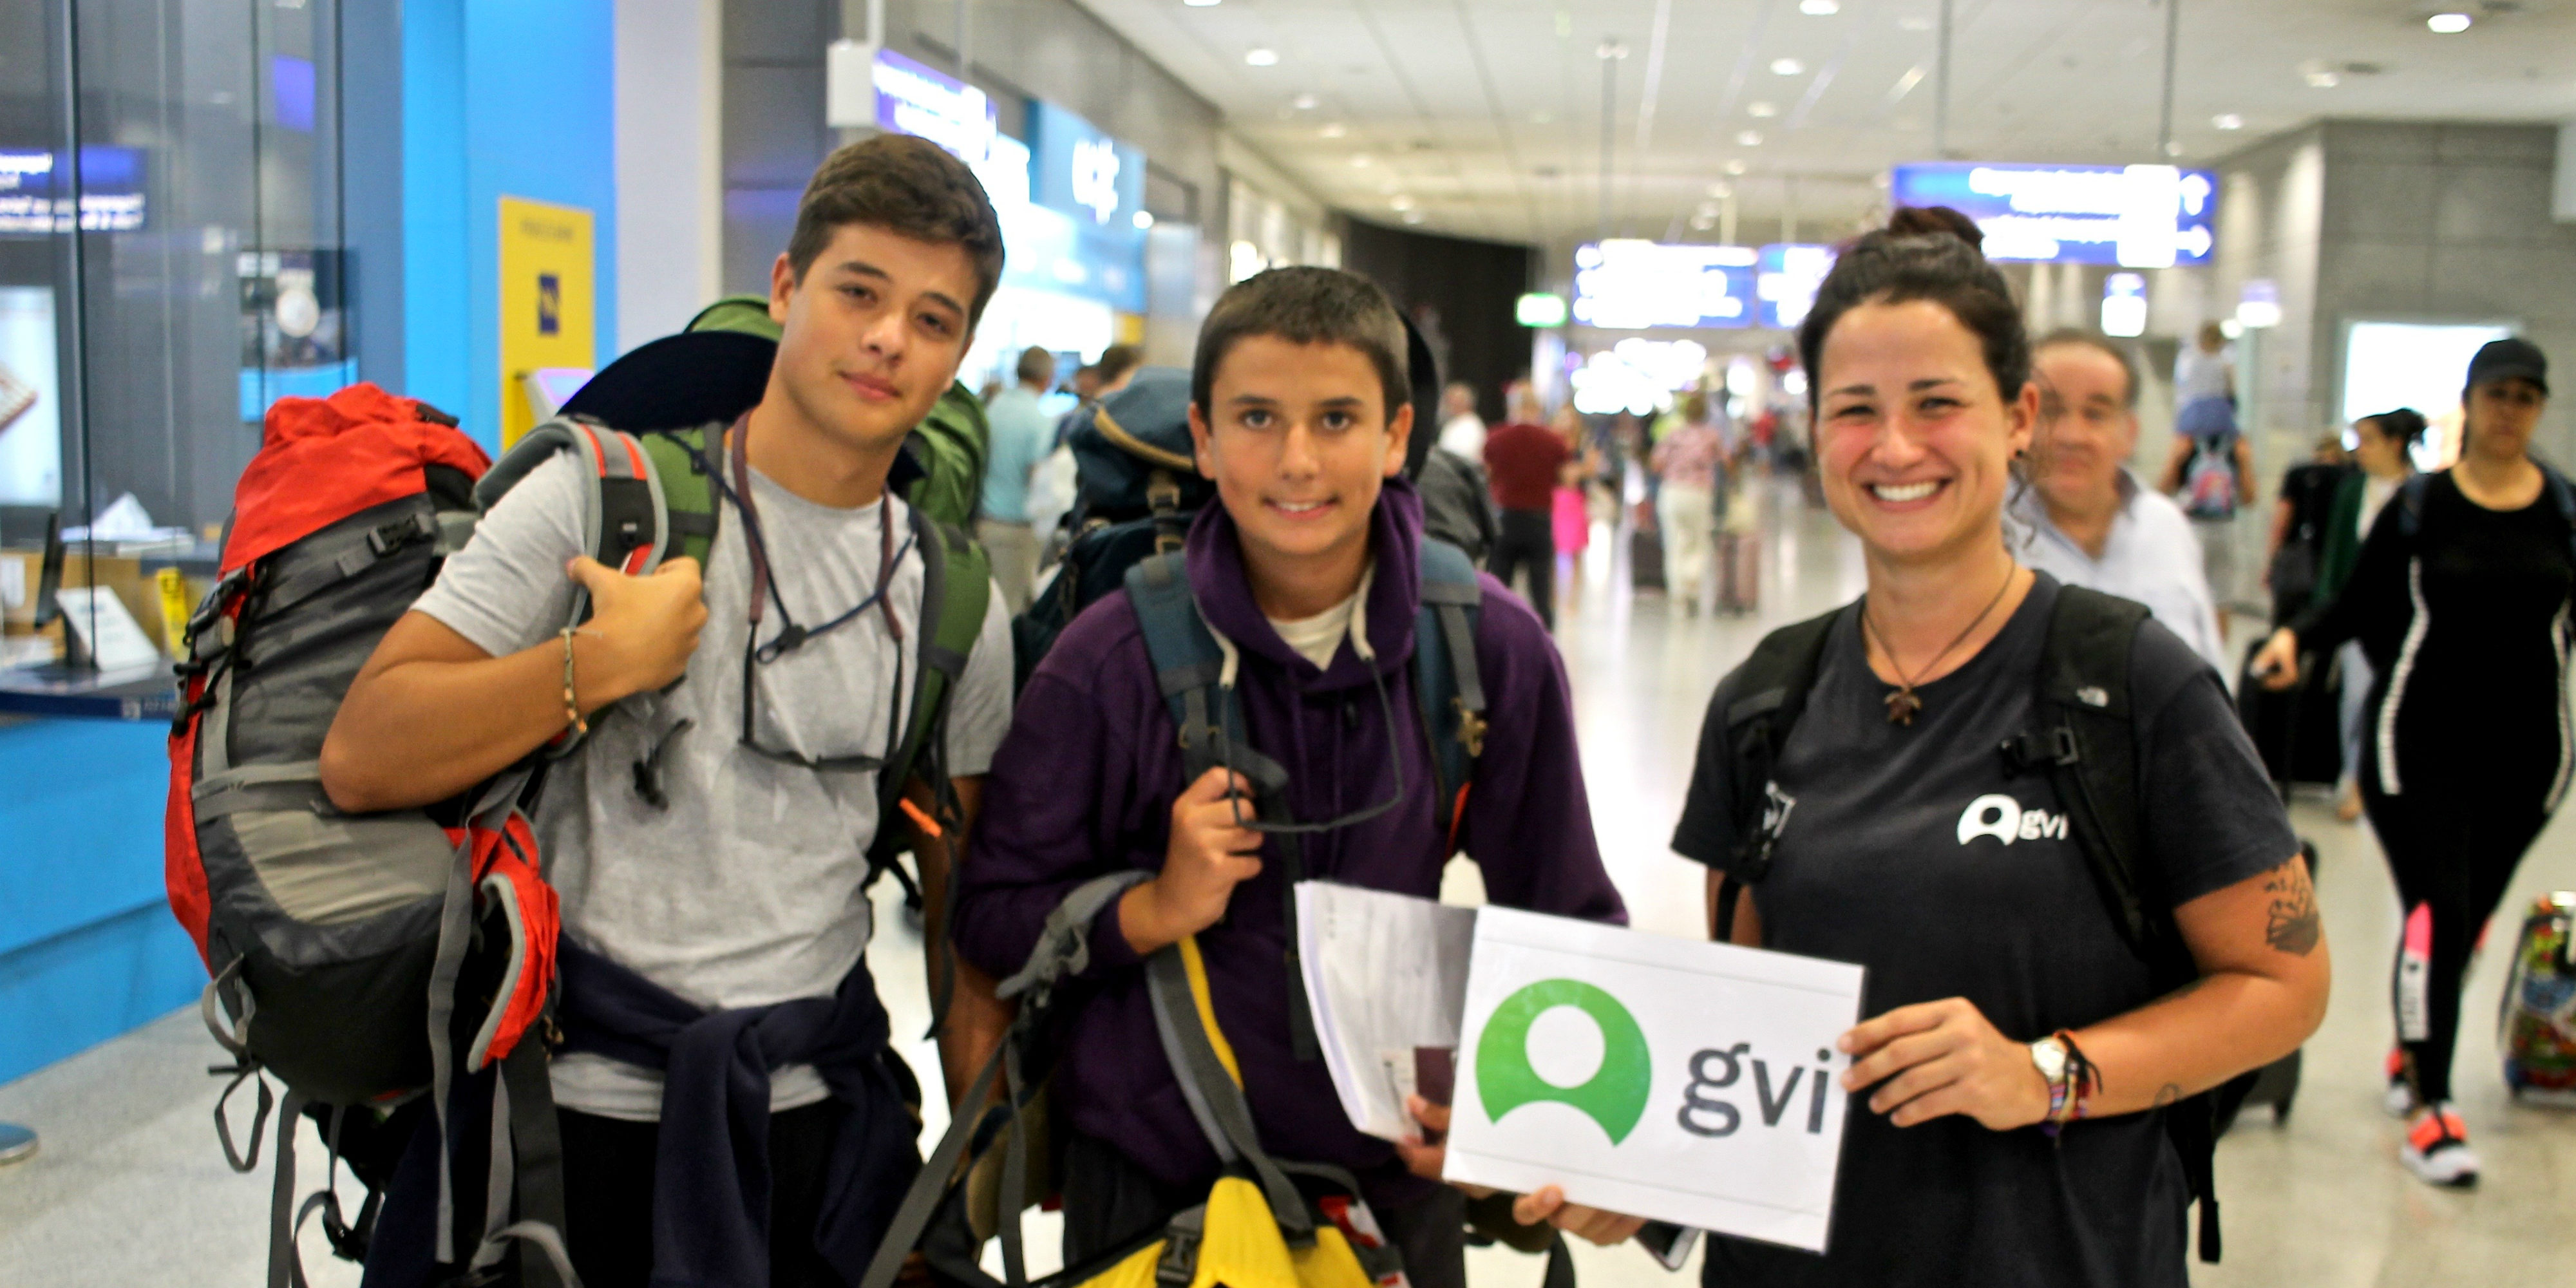 Wondering what to pack for a school trip abroad? These teen volunteers prepared well, with all their kit stored in a lightweight backpack.